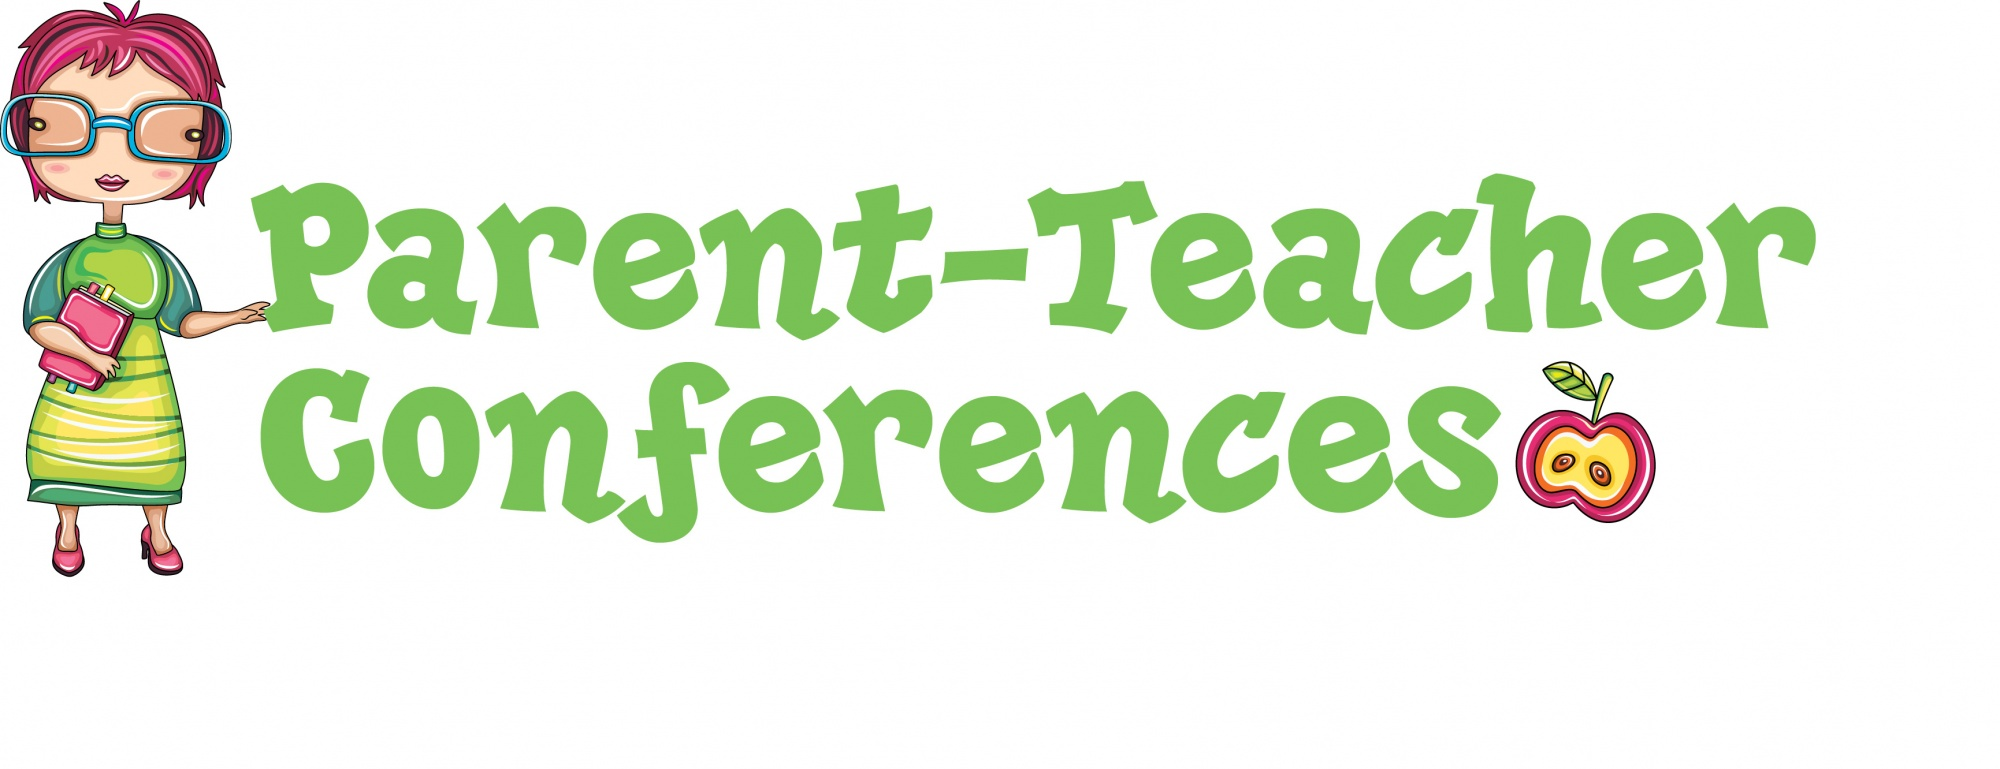 Parent Teacher Conference Clipart Images.